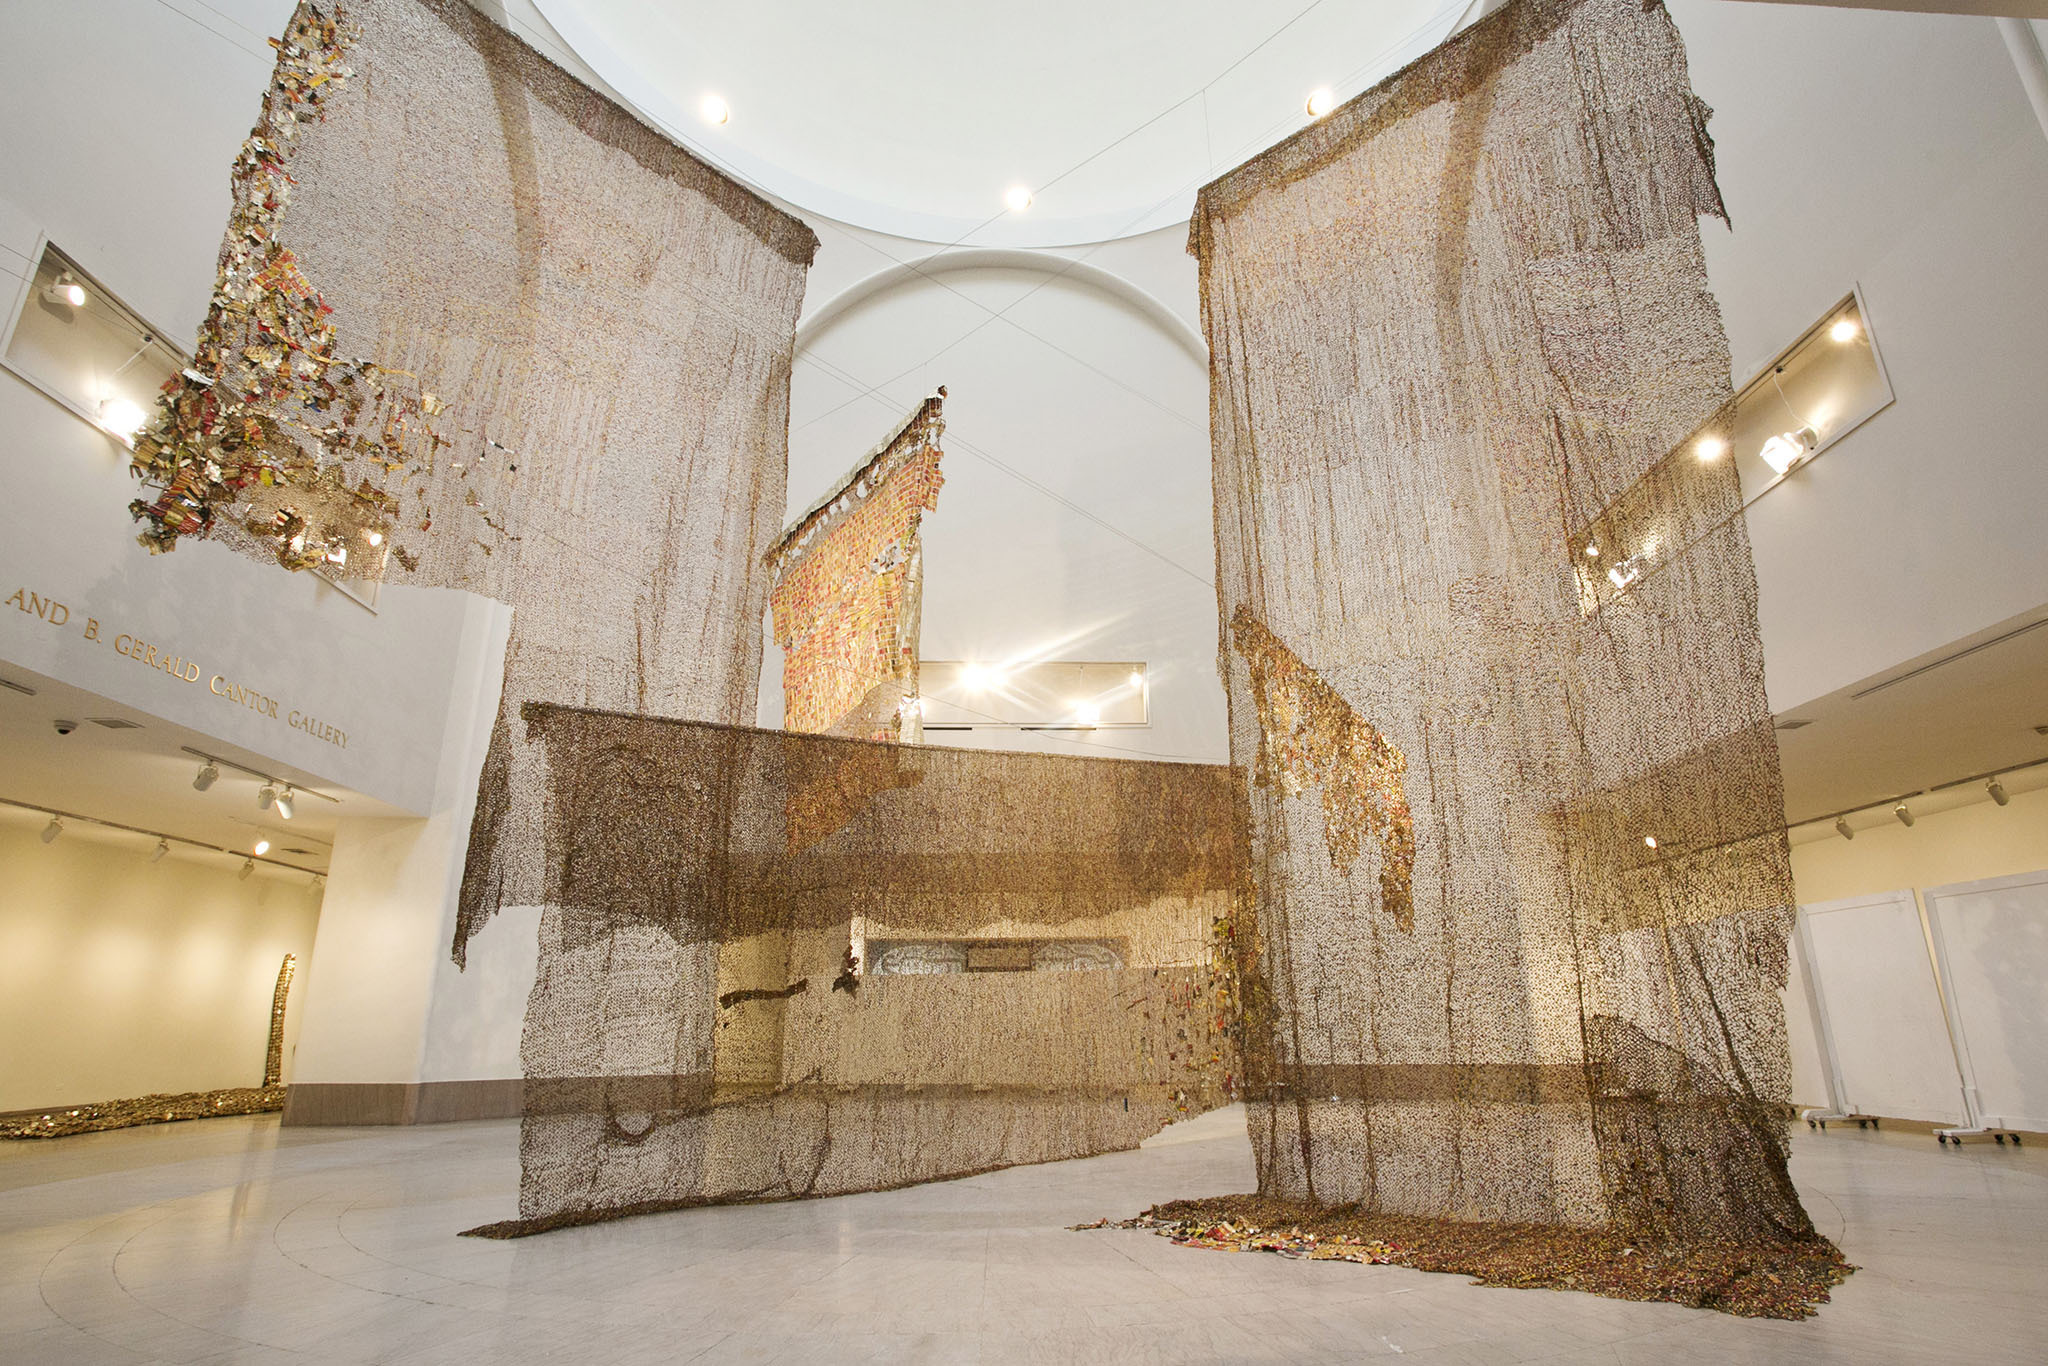 Quot Gravity And Grace Monumental Works By El Anatsui Quot In